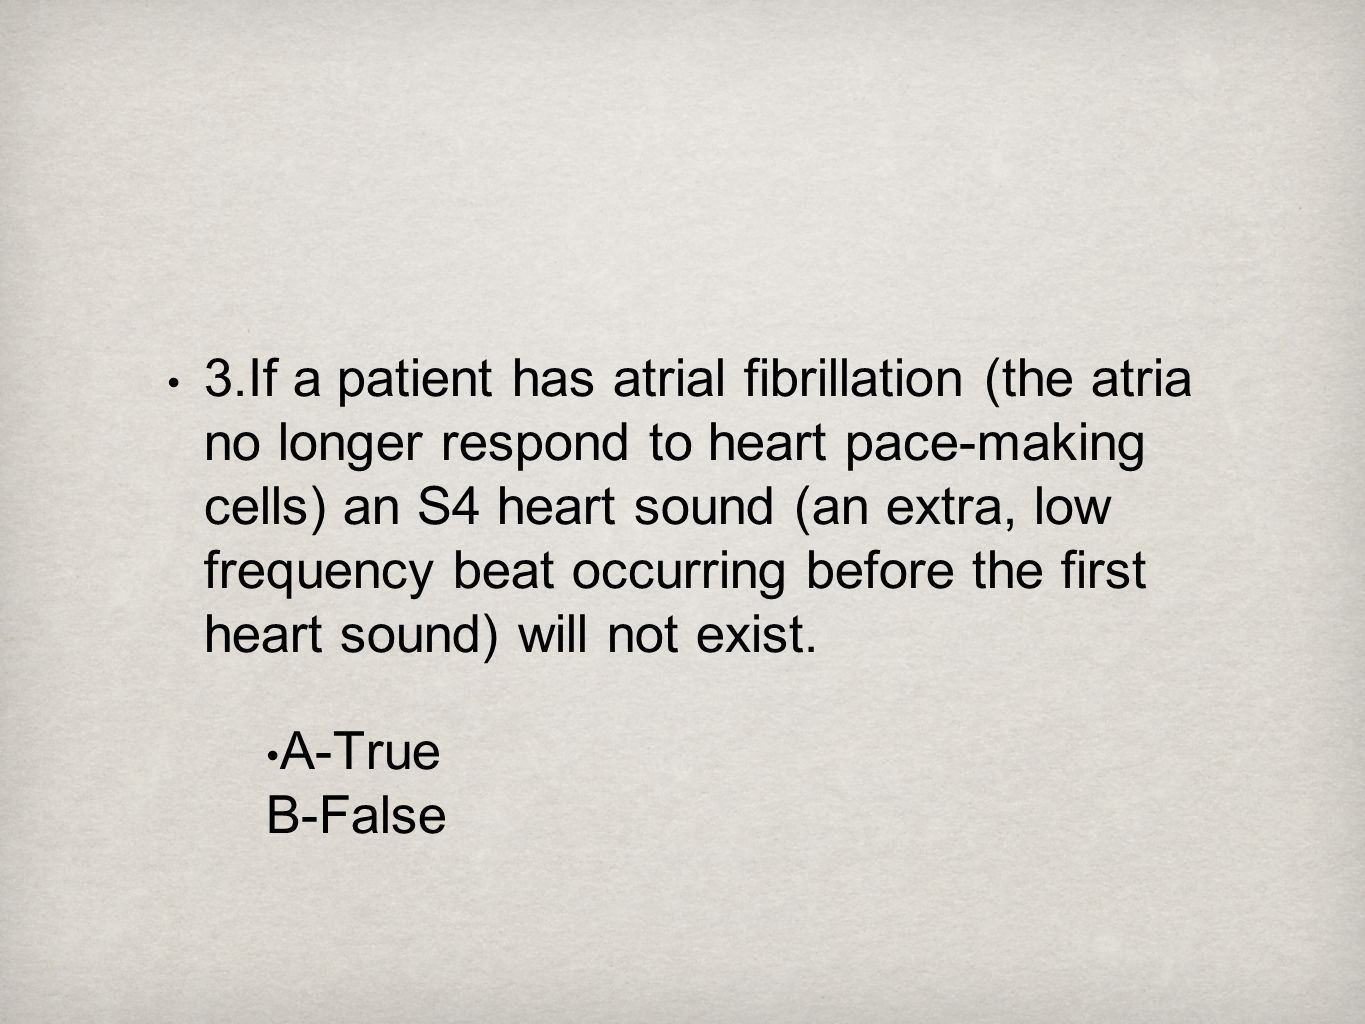 3.If a patient has atrial fibrillation (the atria no longer respond to heart pace-making cells) an S4 heart sound (an extra, low frequency beat occurr